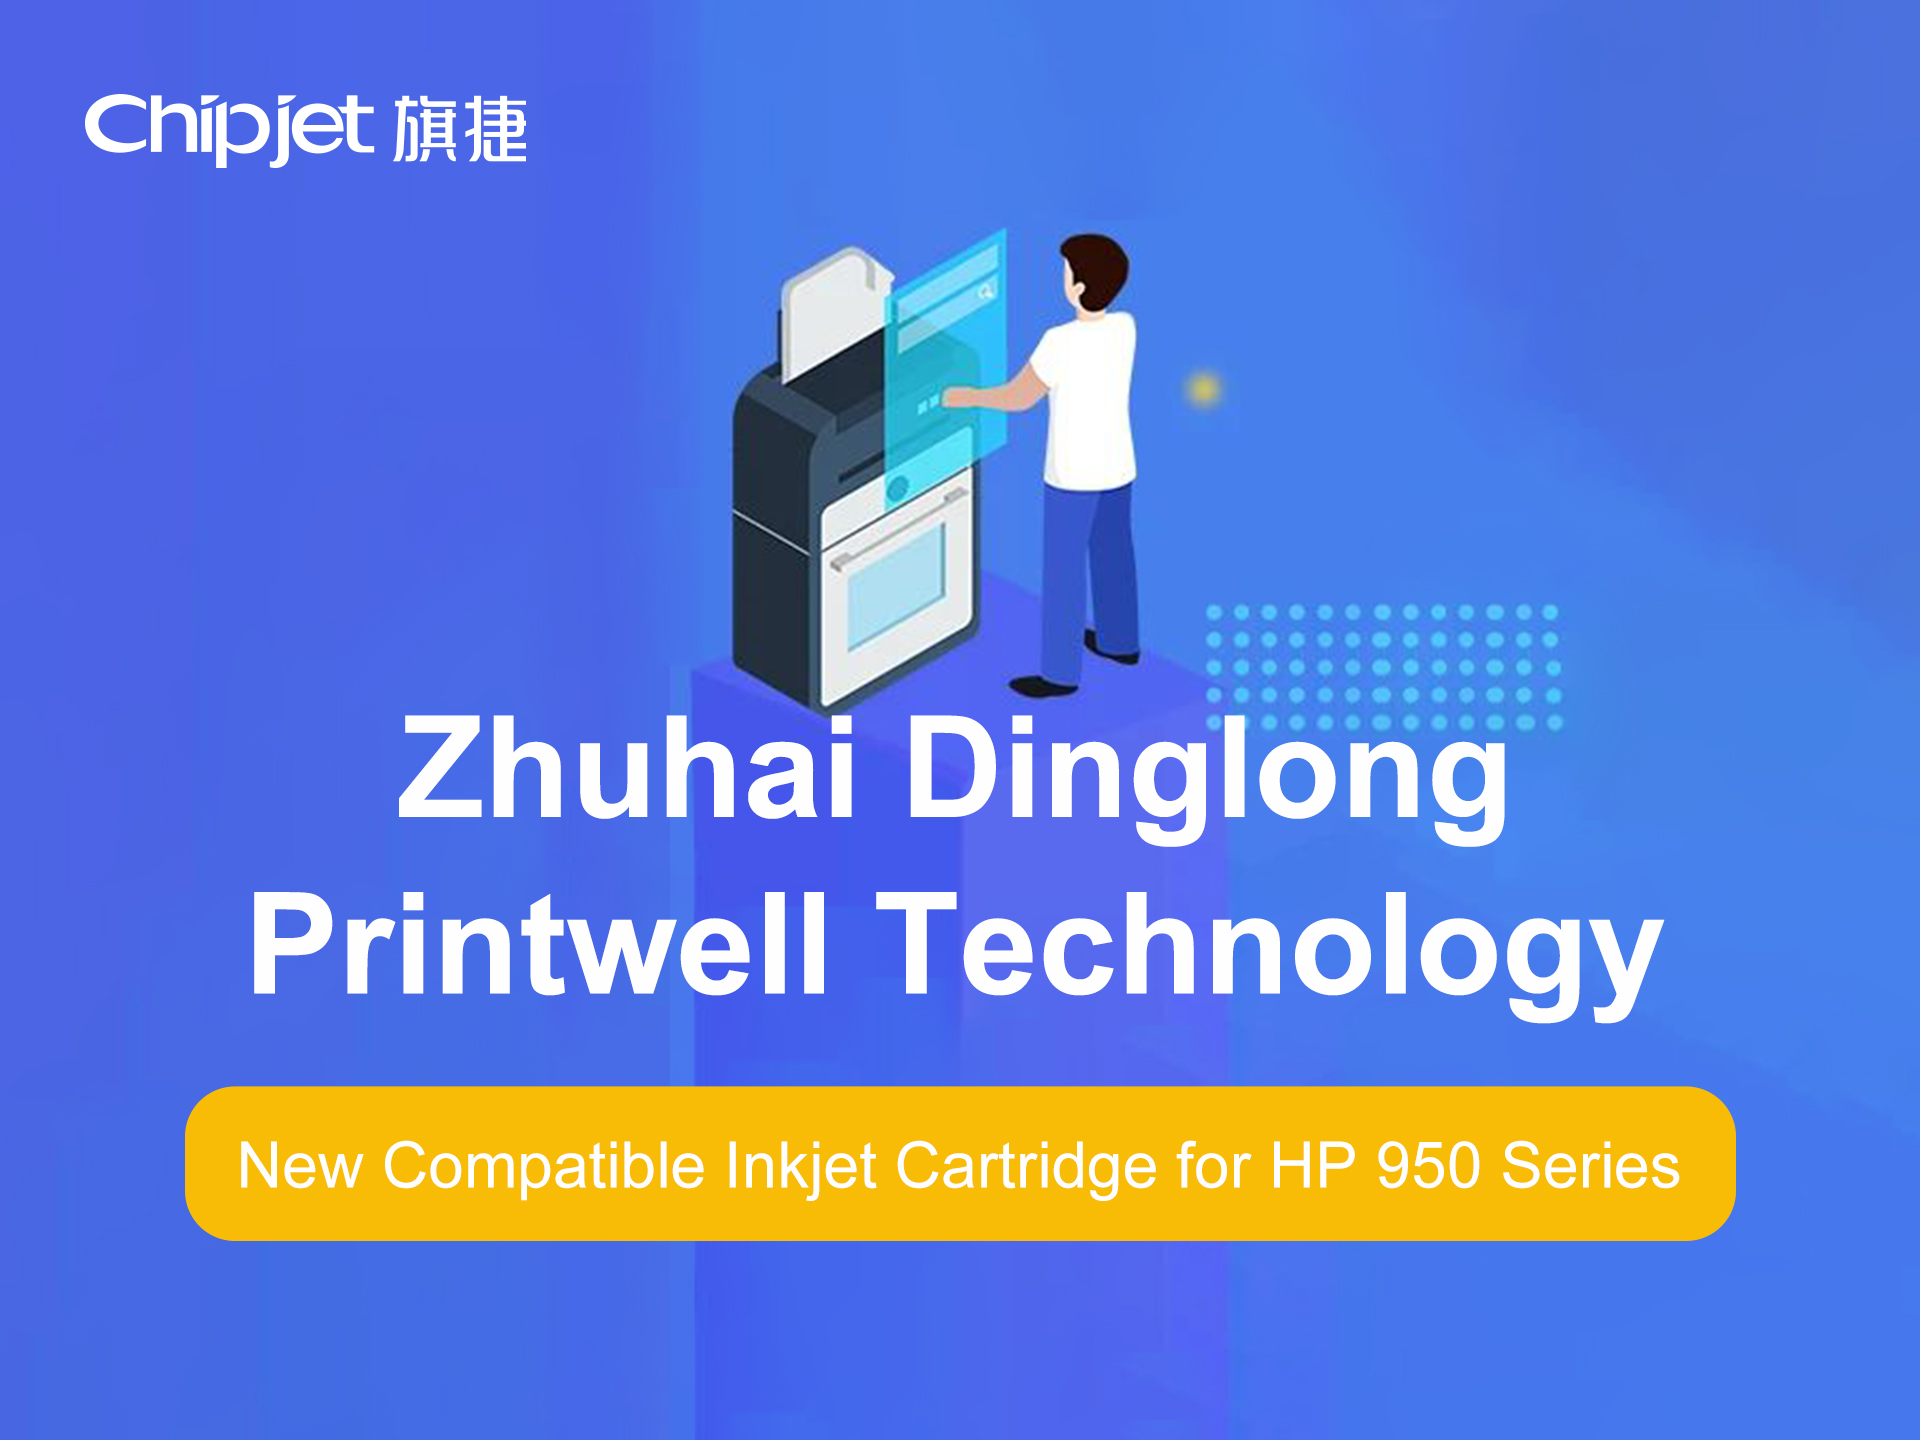 New option for global customers from Printwell